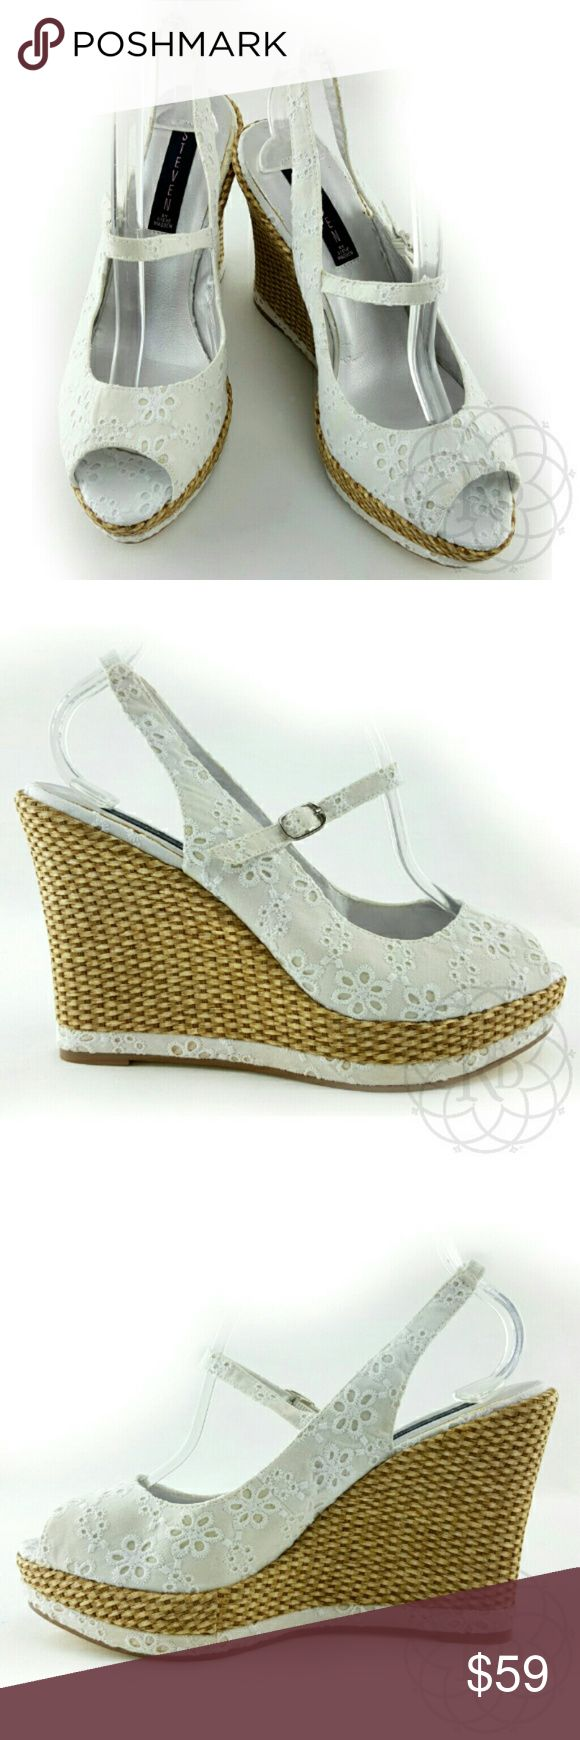 """STEVEN White Eyelet Summer Wedges Stunning STEVEN White Eyelet Summer Wedges  ▪ Heel Height: 4 3/4"""" inches  ⚠ All measurements are approximate  💥 Brand New without Tag or Original Box   ✋ All Sales Final   🚫 Trades or Holds Steven Shoes Wedges"""